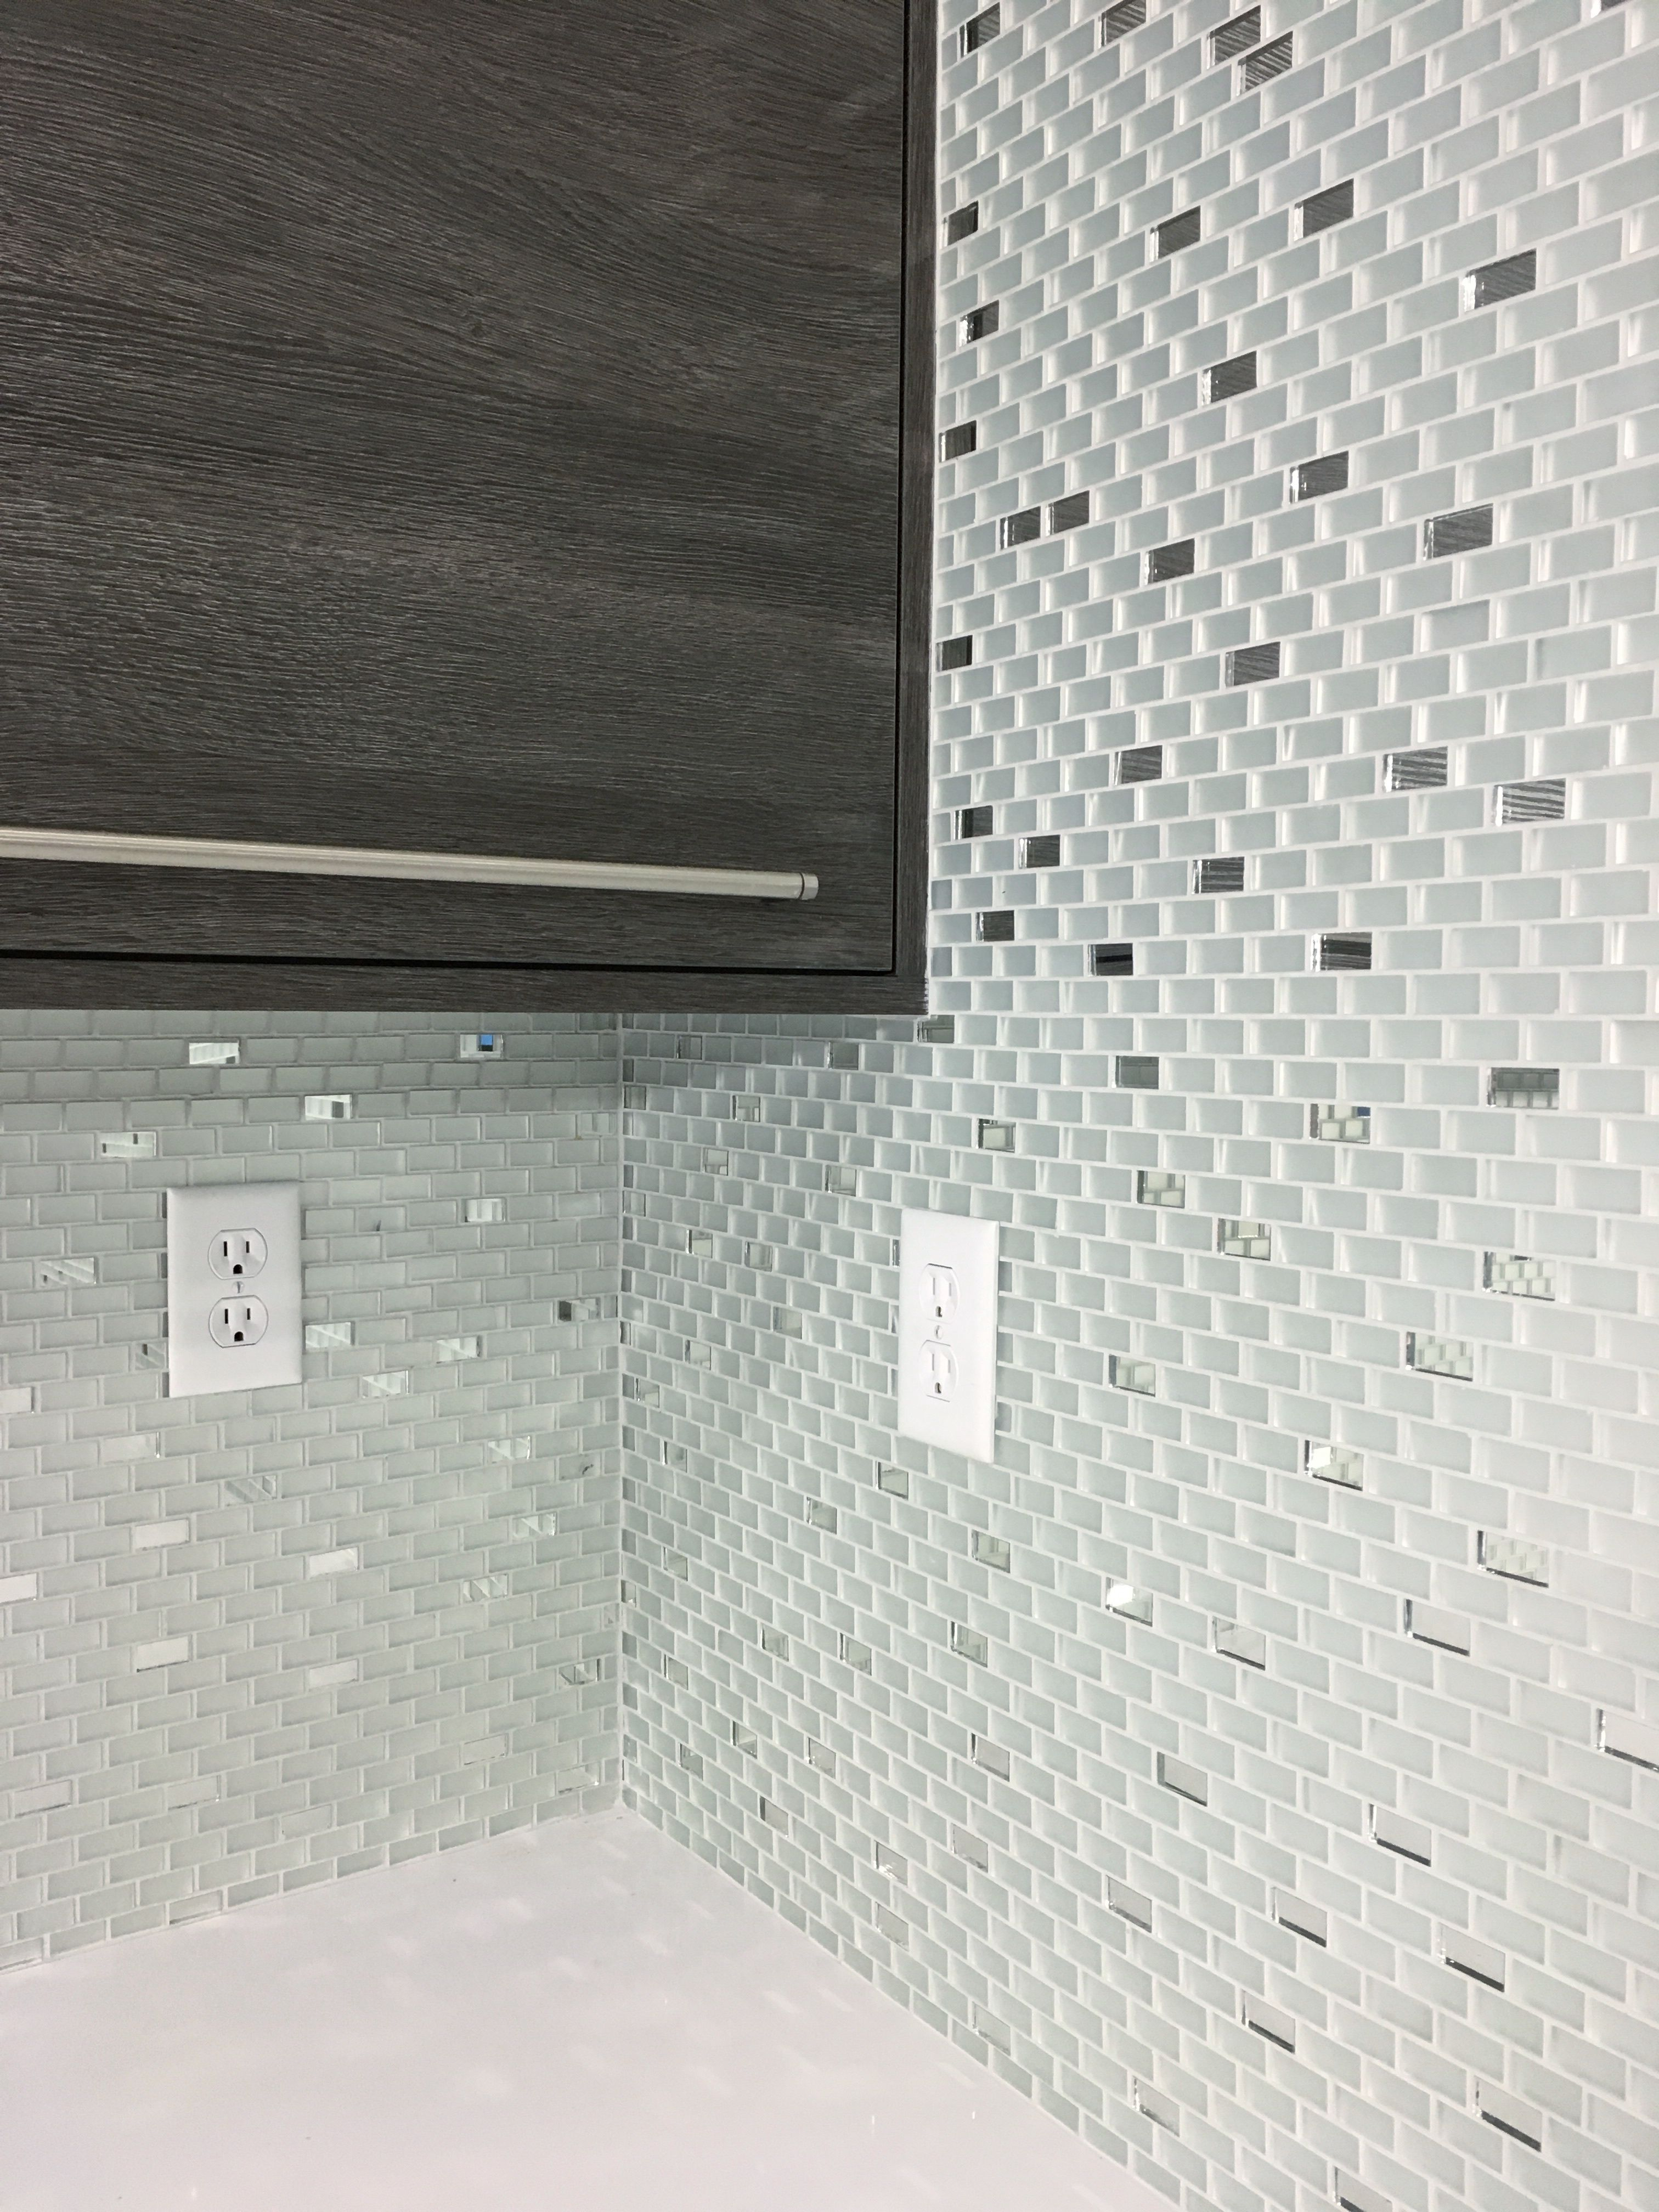 Our frosted mirror glass tile backsplash with regular silver our frosted mirror glass tile backsplash with regular silver mirror tiles can dailygadgetfo Gallery